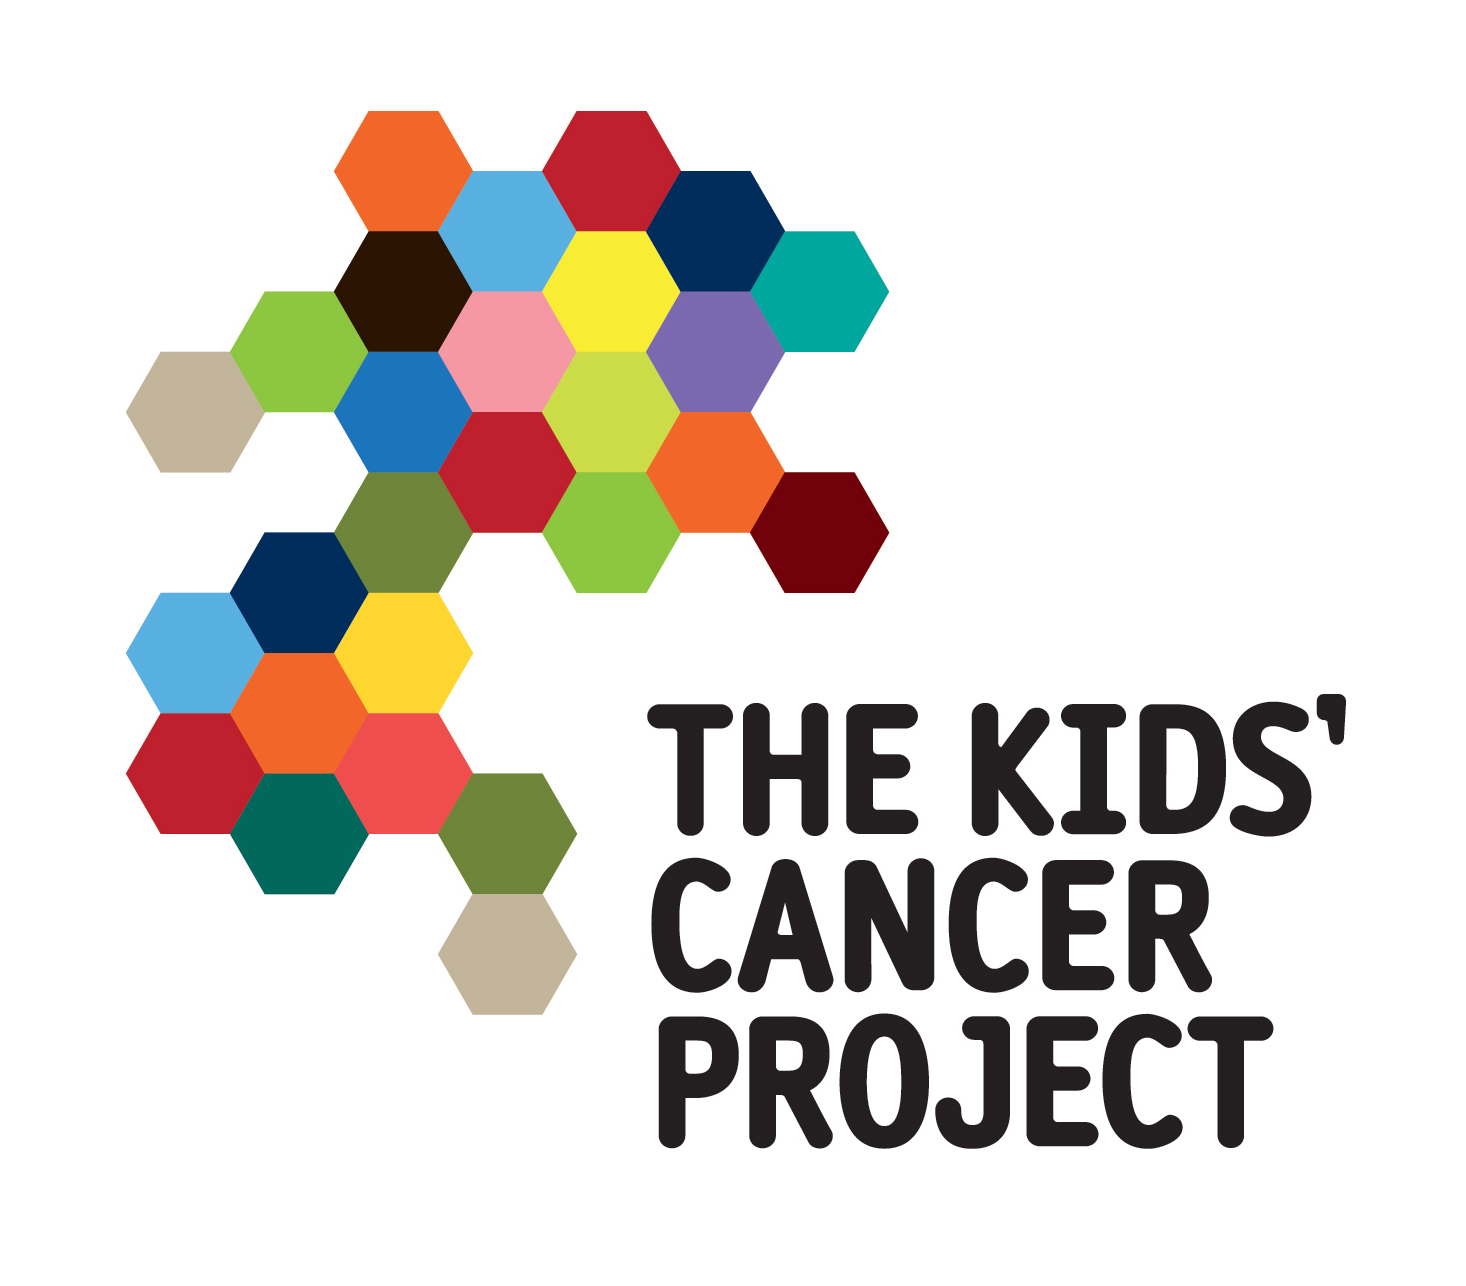 cancer project Postal address the kids' cancer project po box 6400 alexandria, nsw 2015 tel: 1800 651 158 fax: (02) 8394 7700 enquiry form.